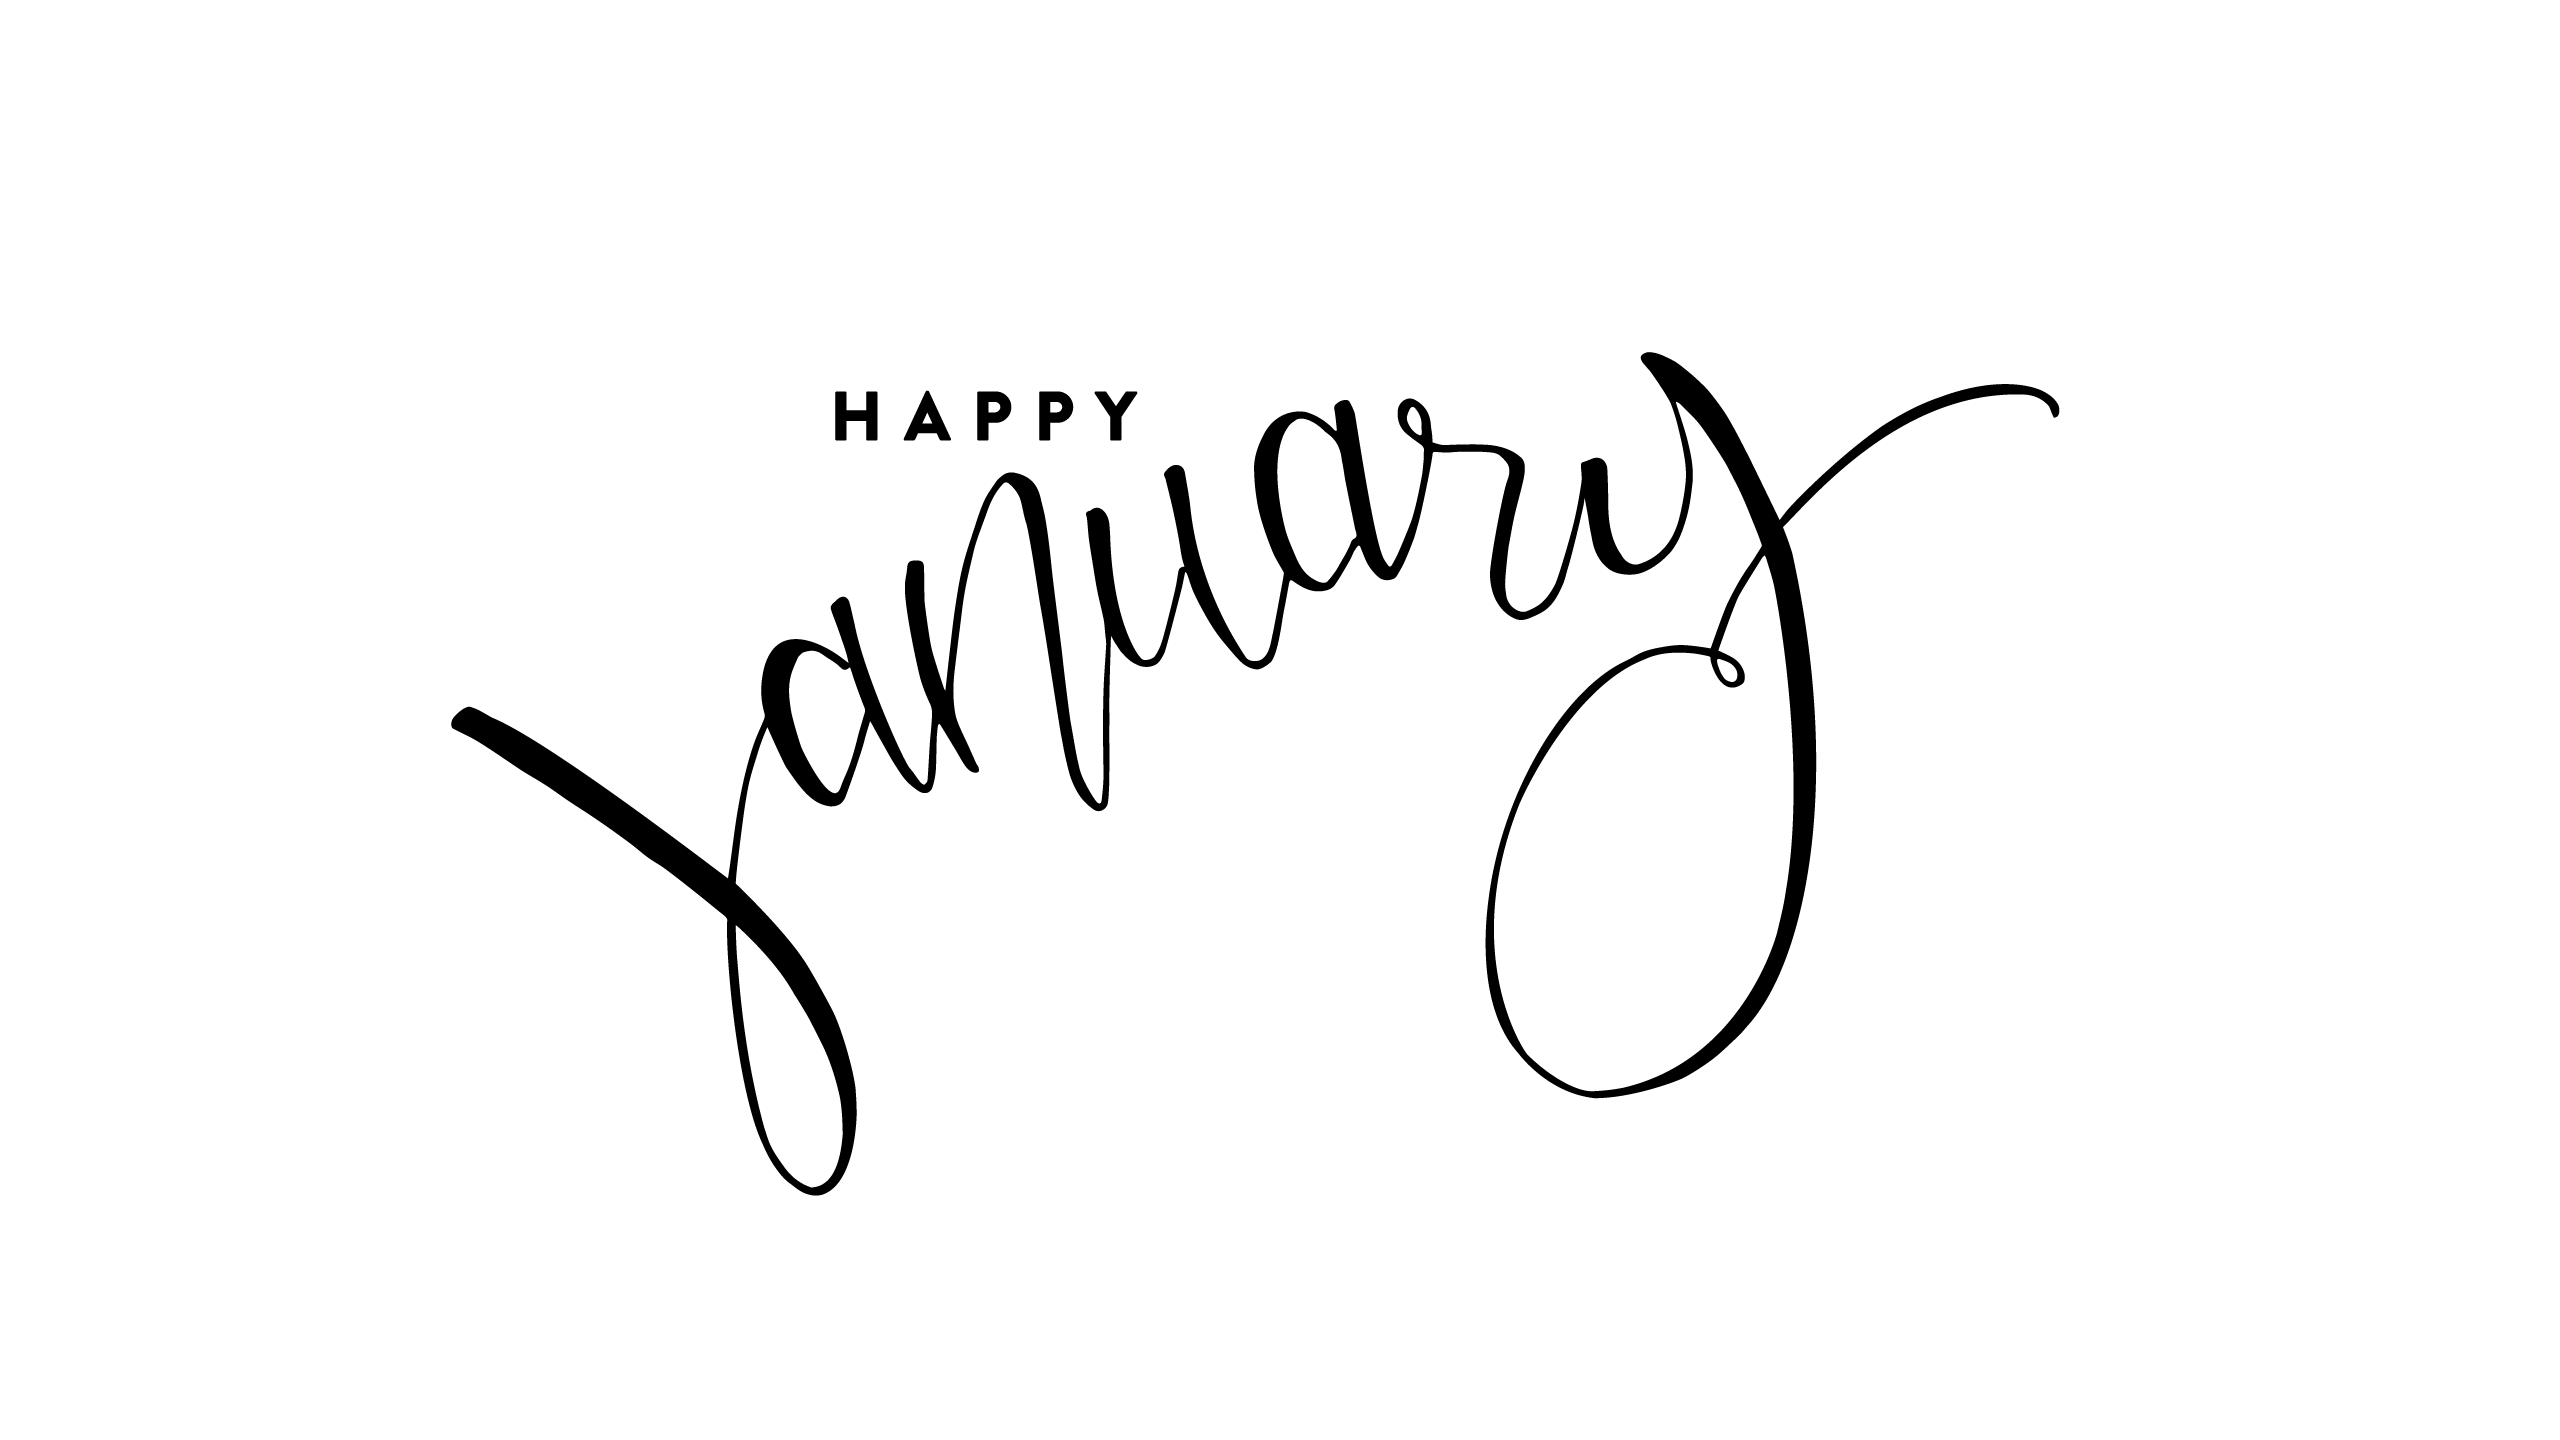 2560x1440 Hello January Images Black and White | January images, Hello january